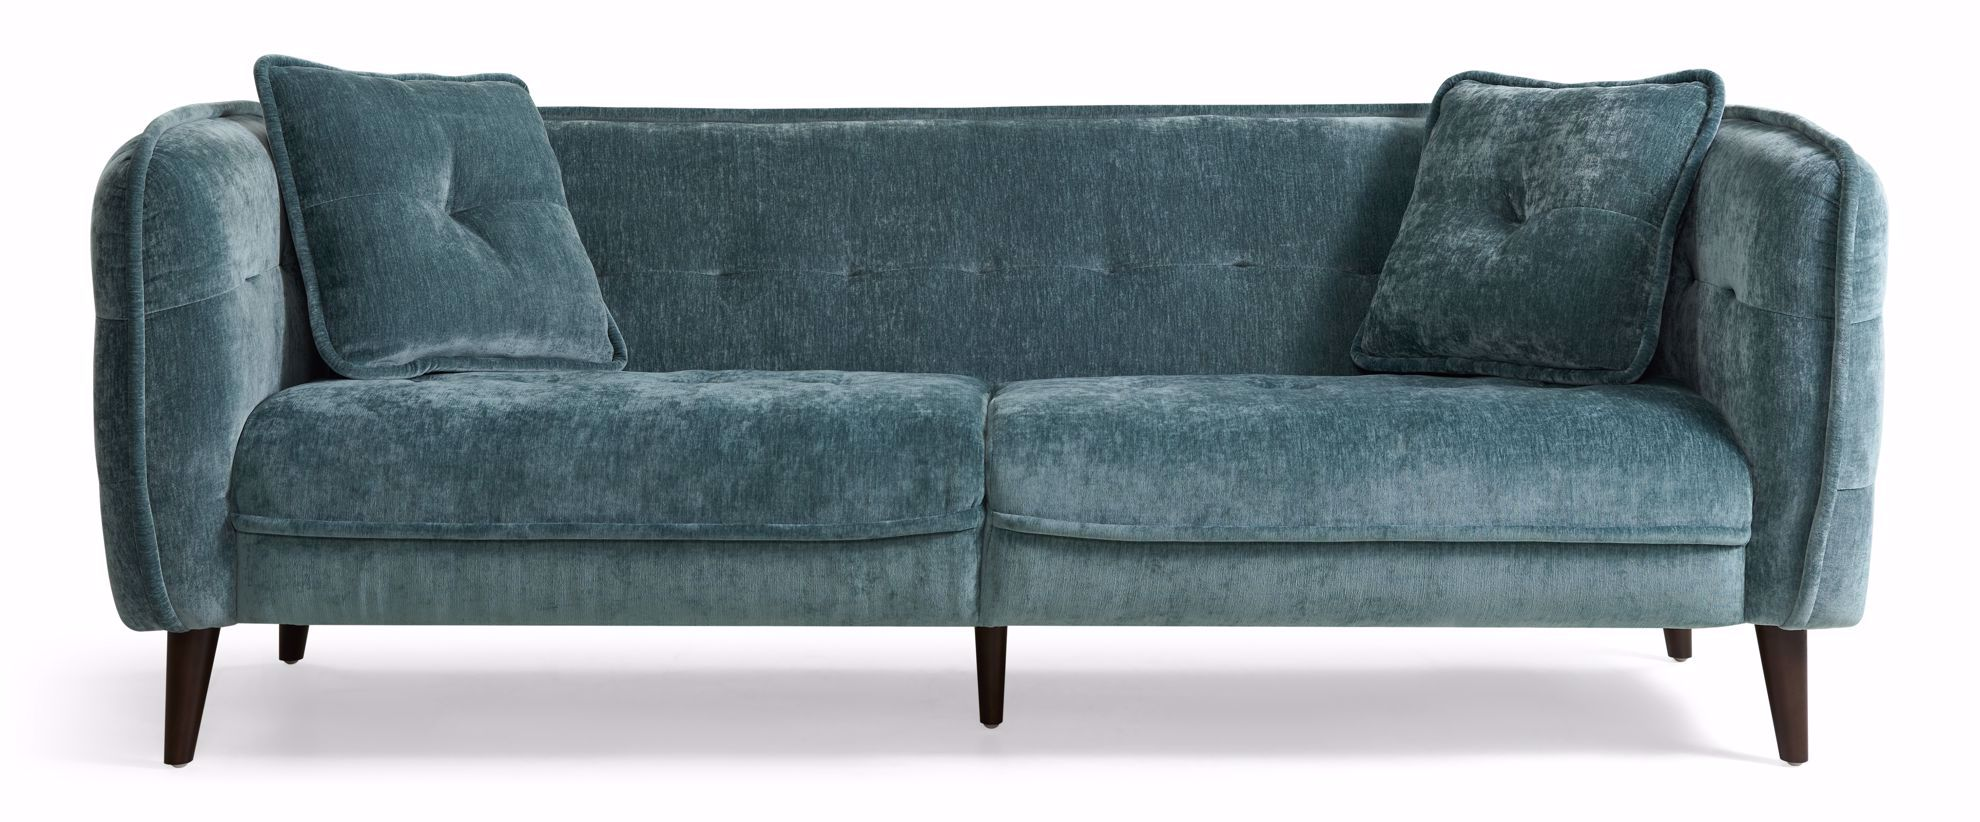 Picture of Daphne Teal Sofa